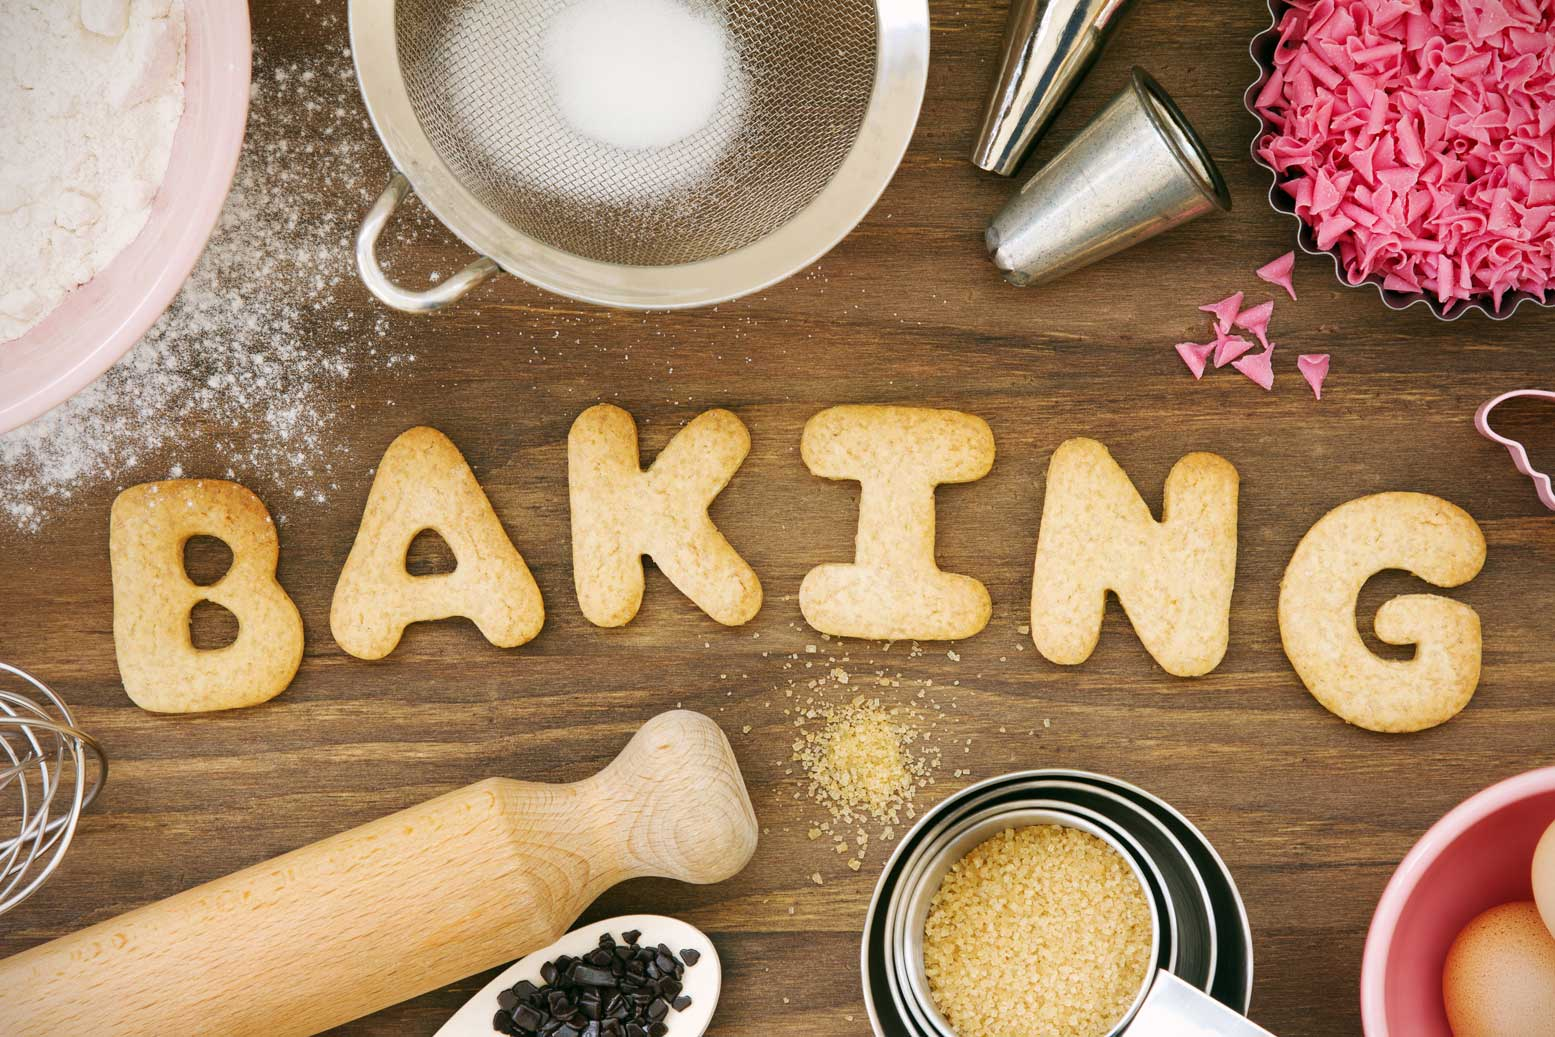 baking-text-into-images